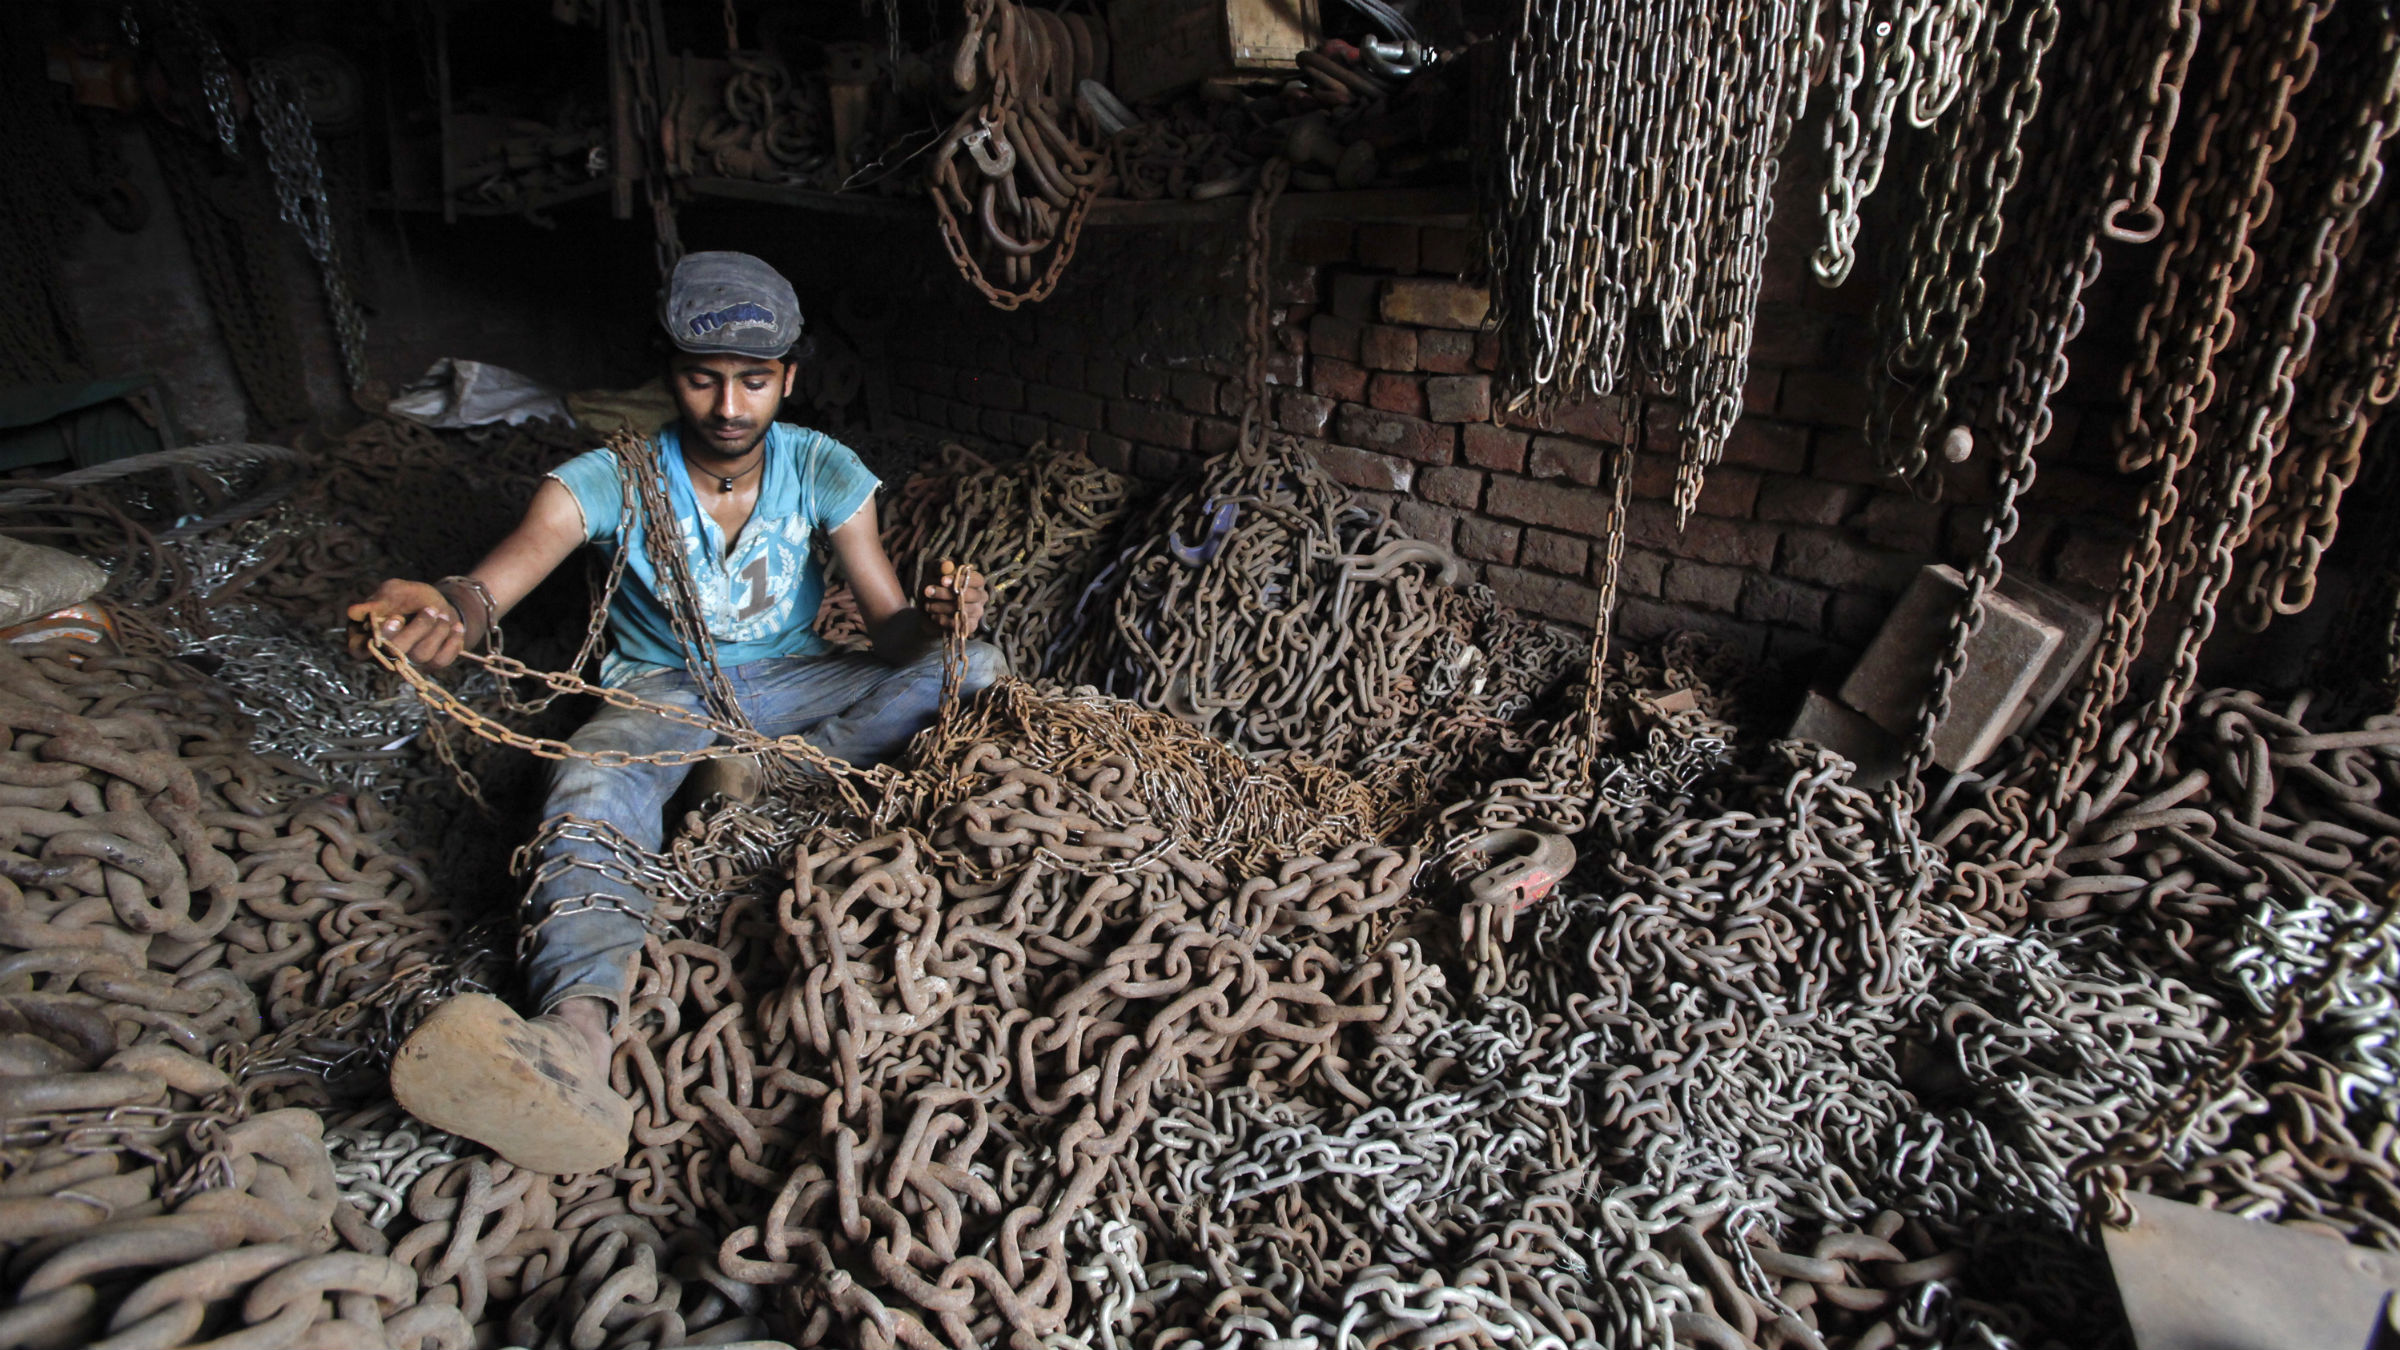 Man in room full of metal chains